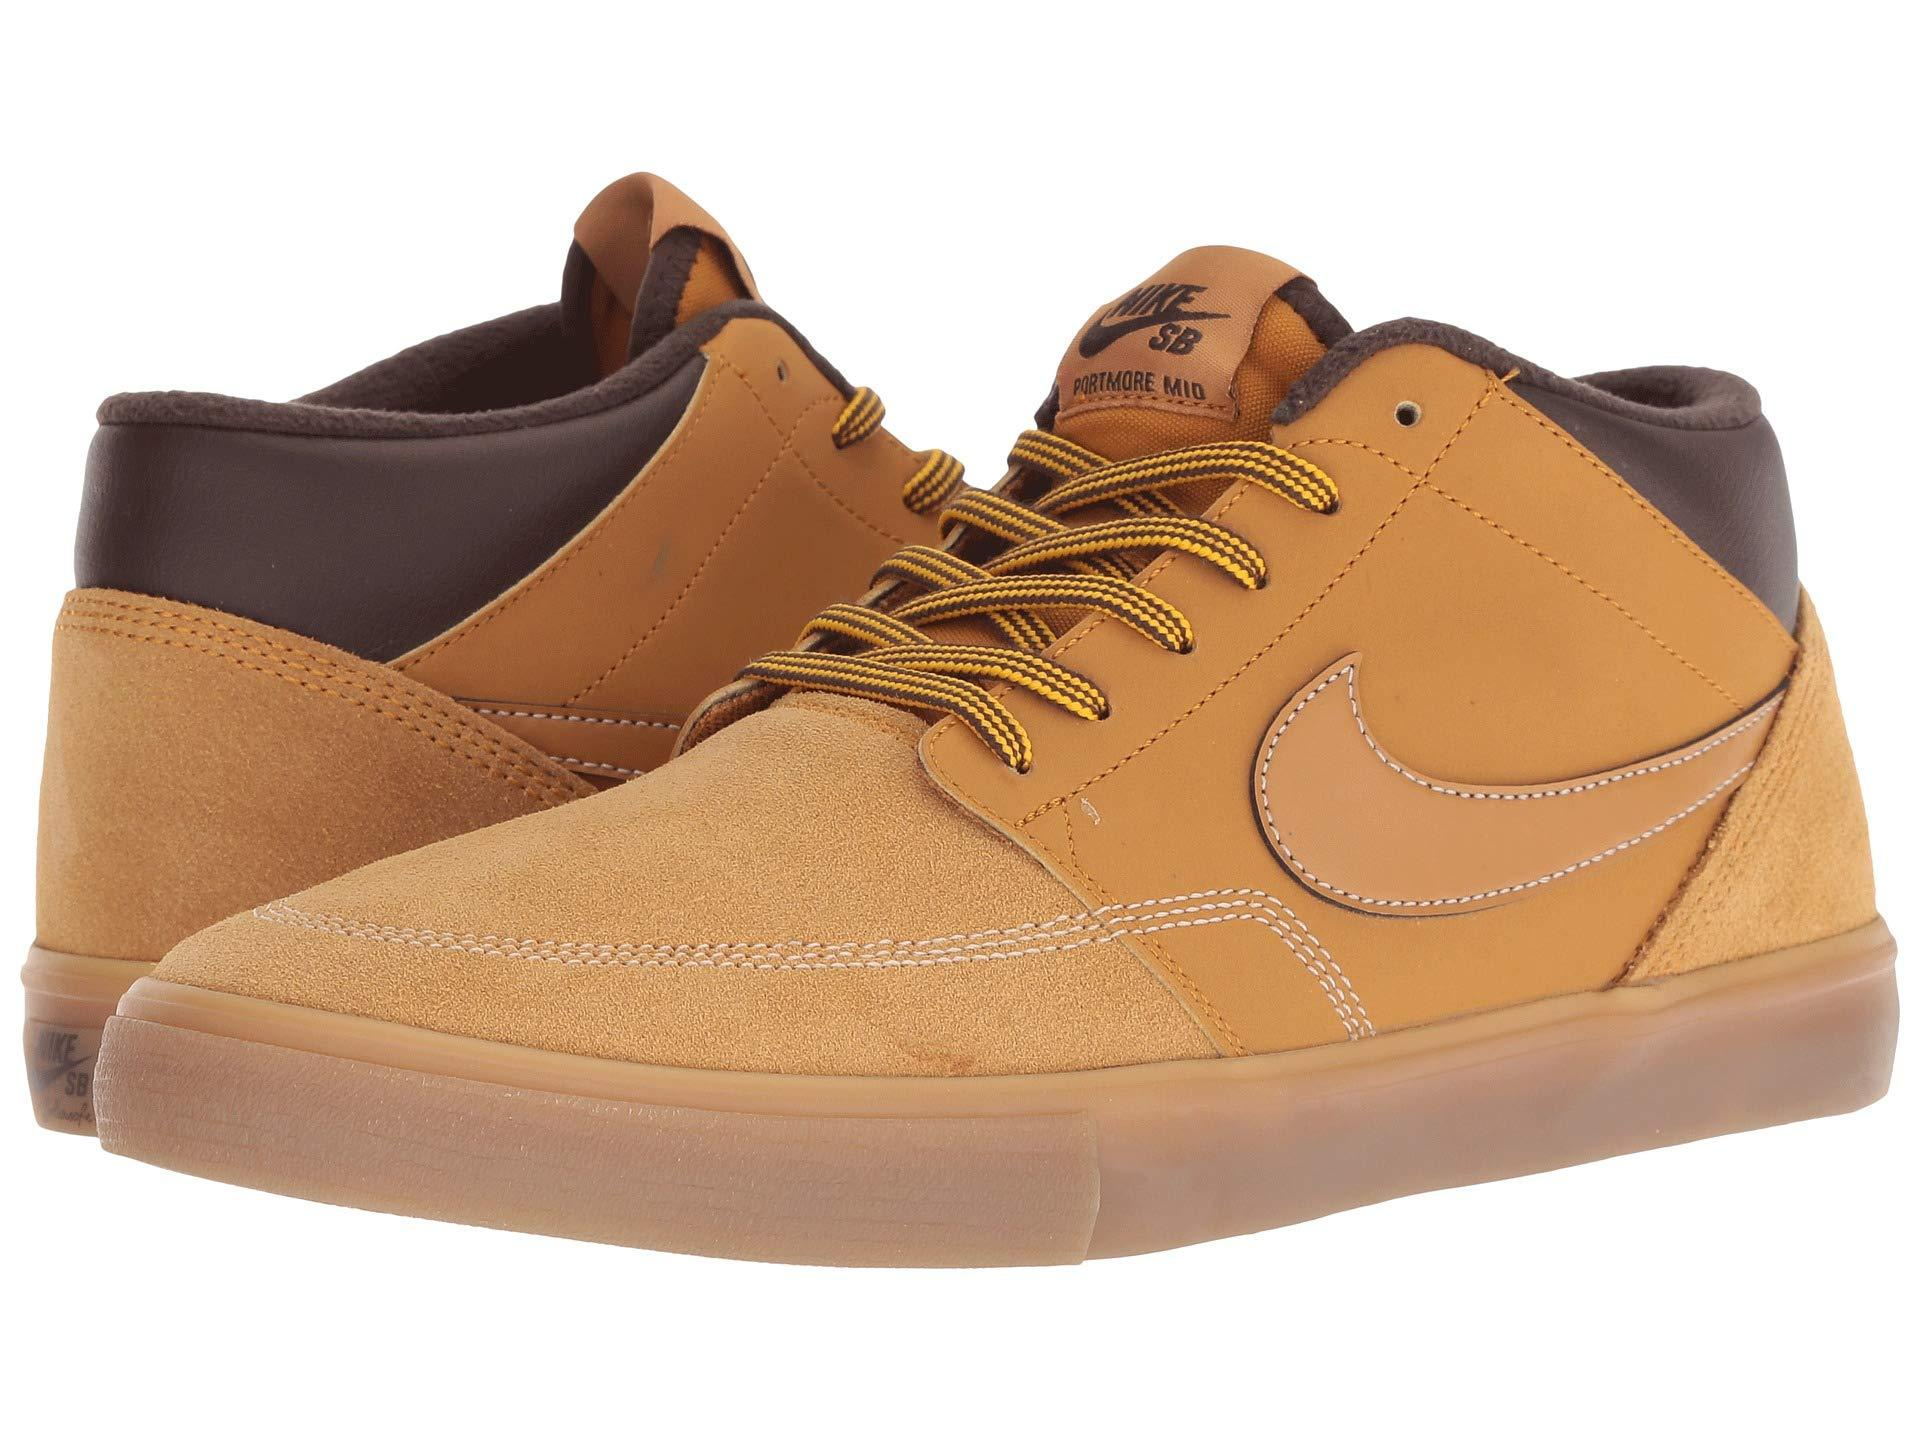 2a3da46ae03a Lyst - Nike Portmore Ii Solarsoft Mid Bota in Brown for Men - Save 25%